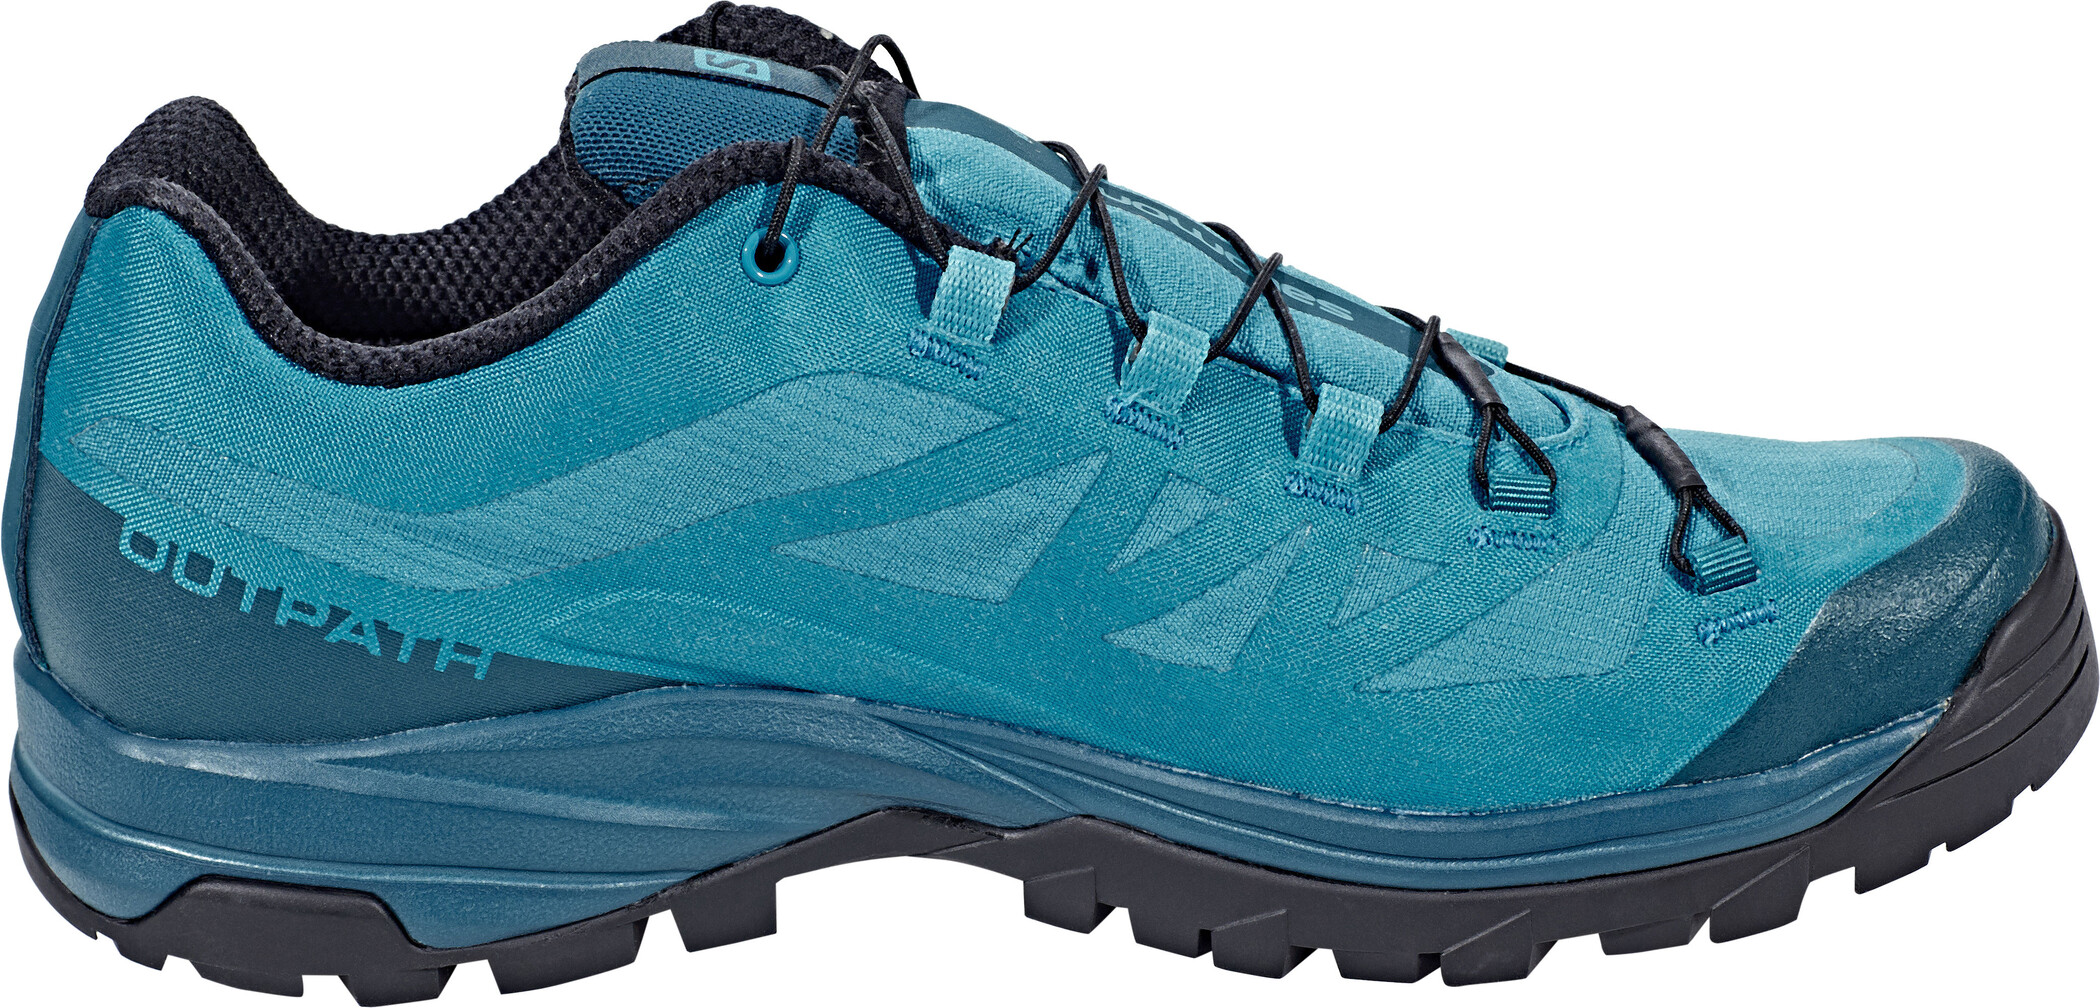 Salomon Outpath GTX Shoes Dam tahitian tidereflecting pondblack